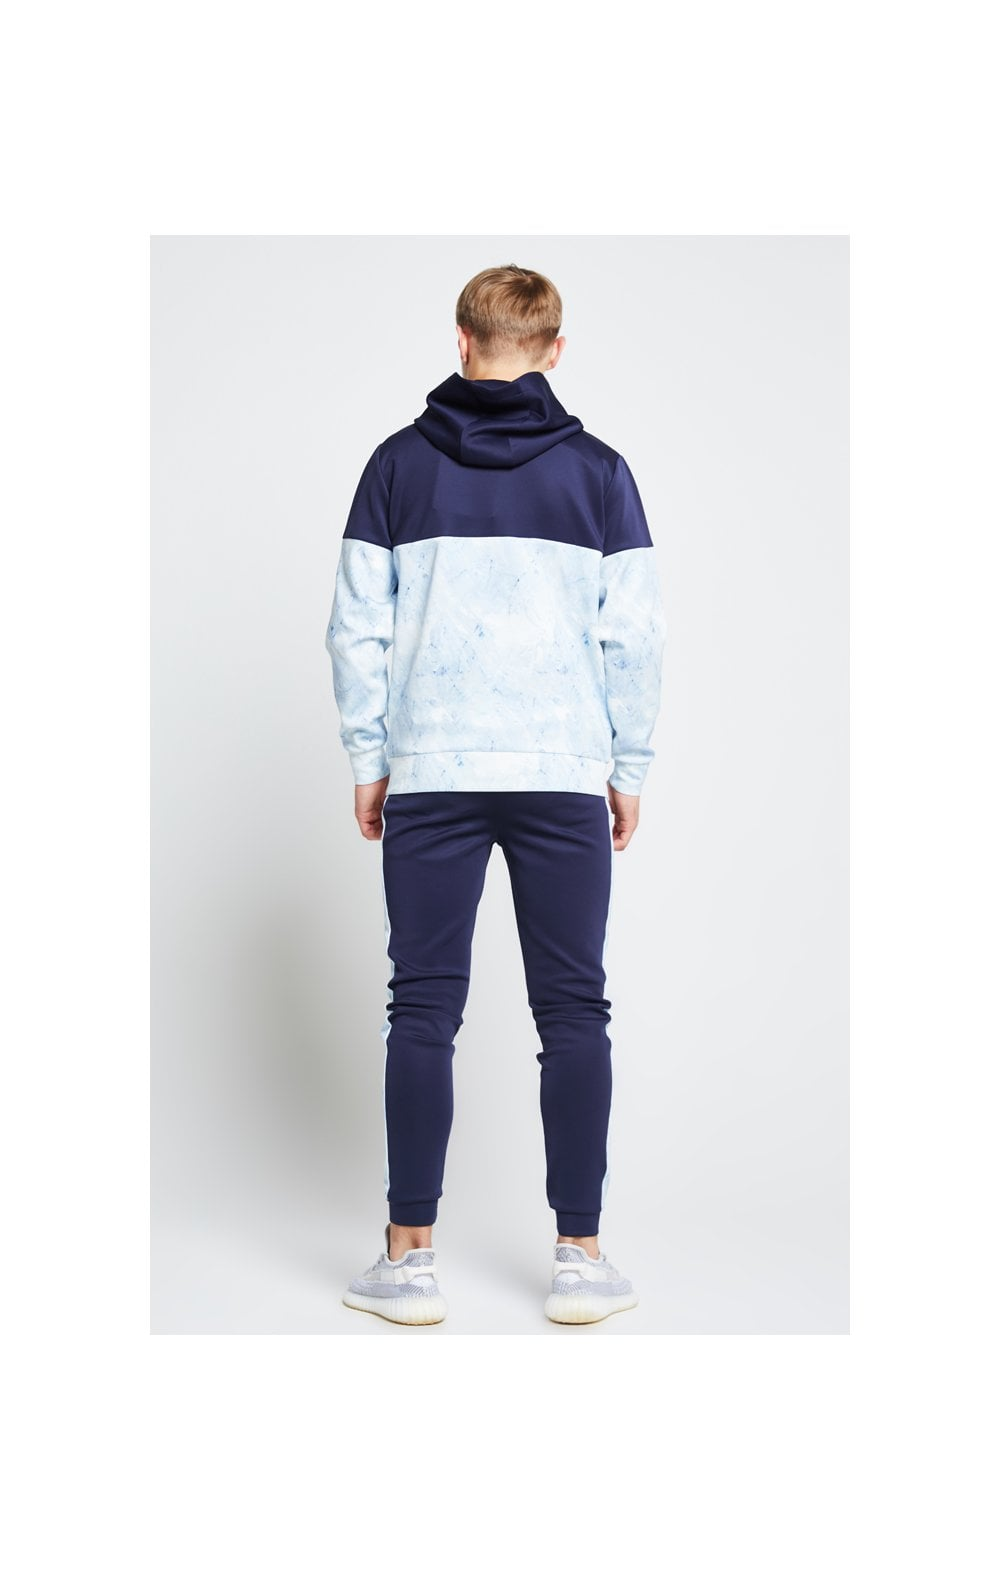 Illusive London Cut & Sew Marble Overhead Hoodie - Navy & Marble (4)